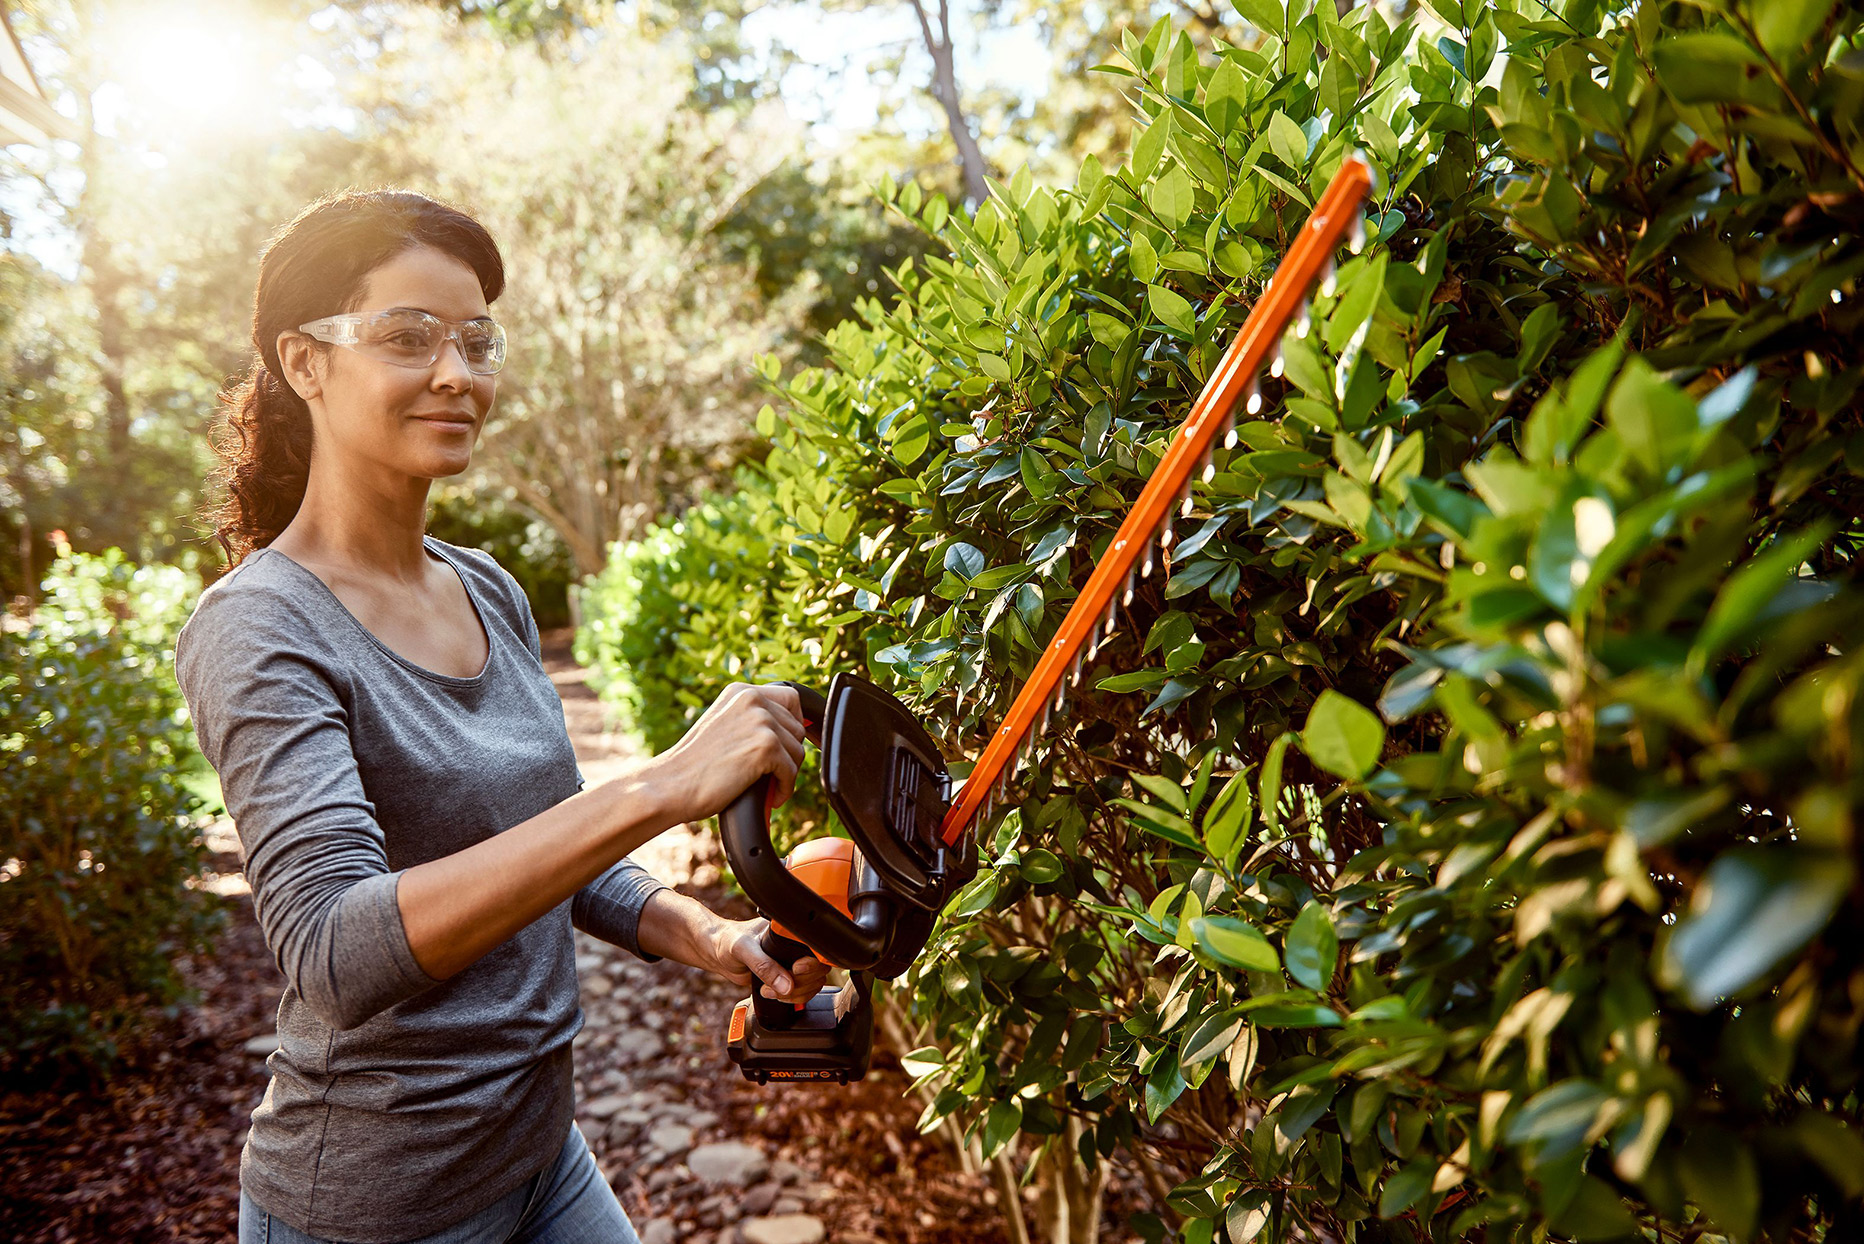 woman using hedge trimmer in yard